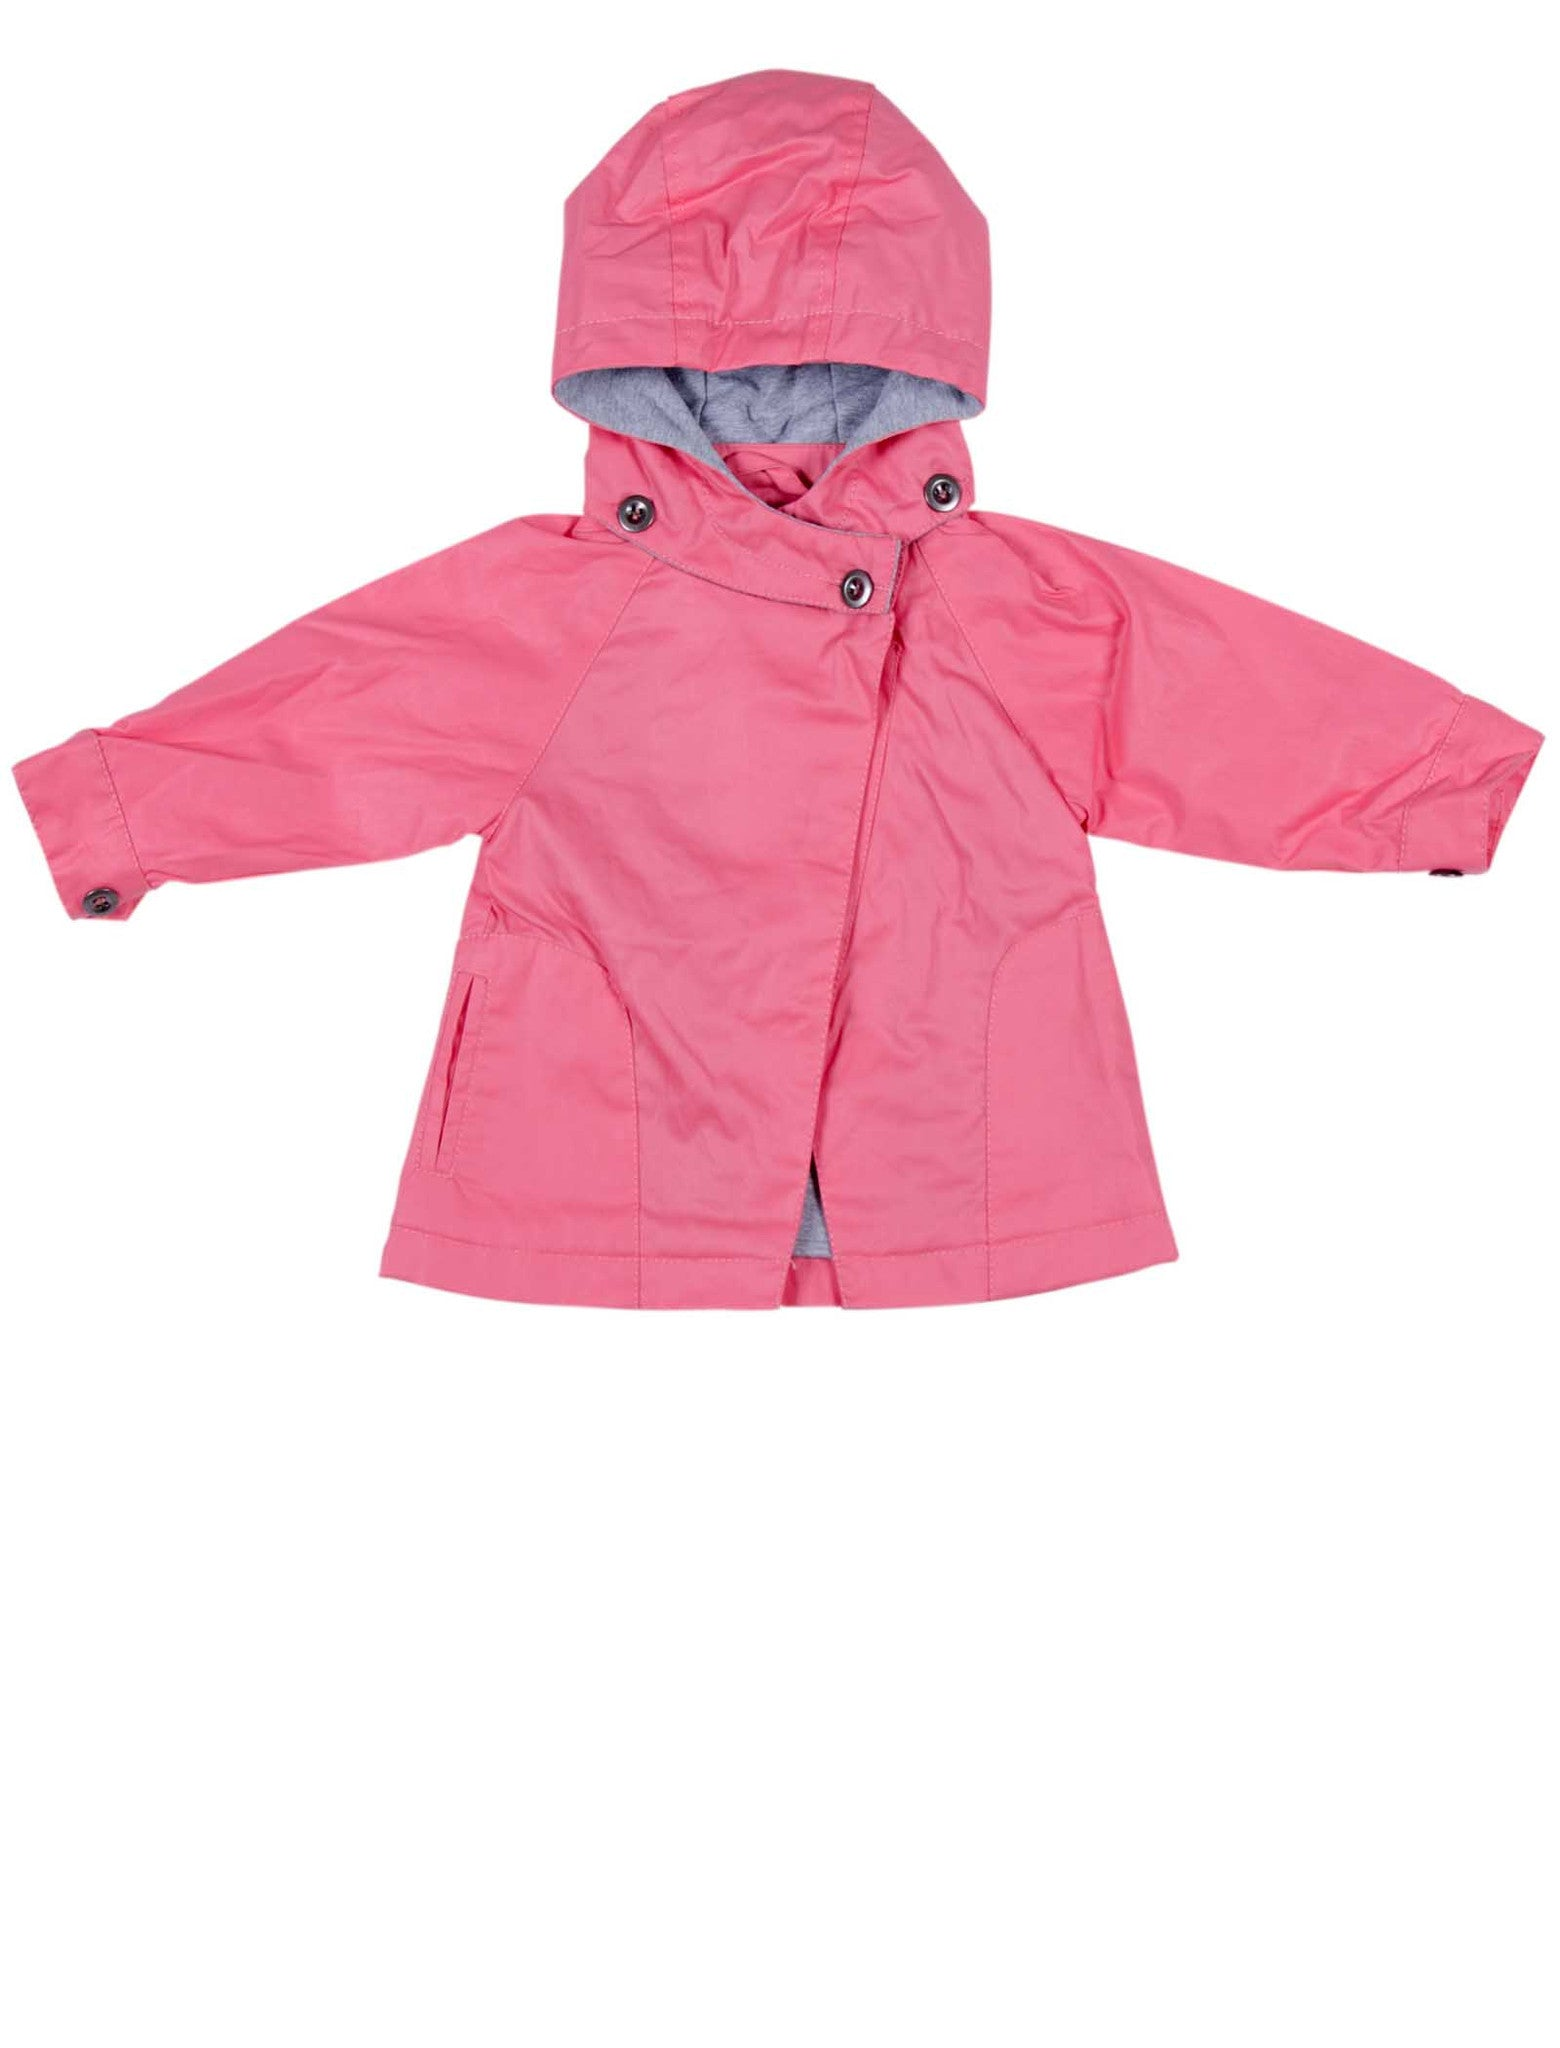 KIDSCASE JONES WATERPROOF BABY COAT